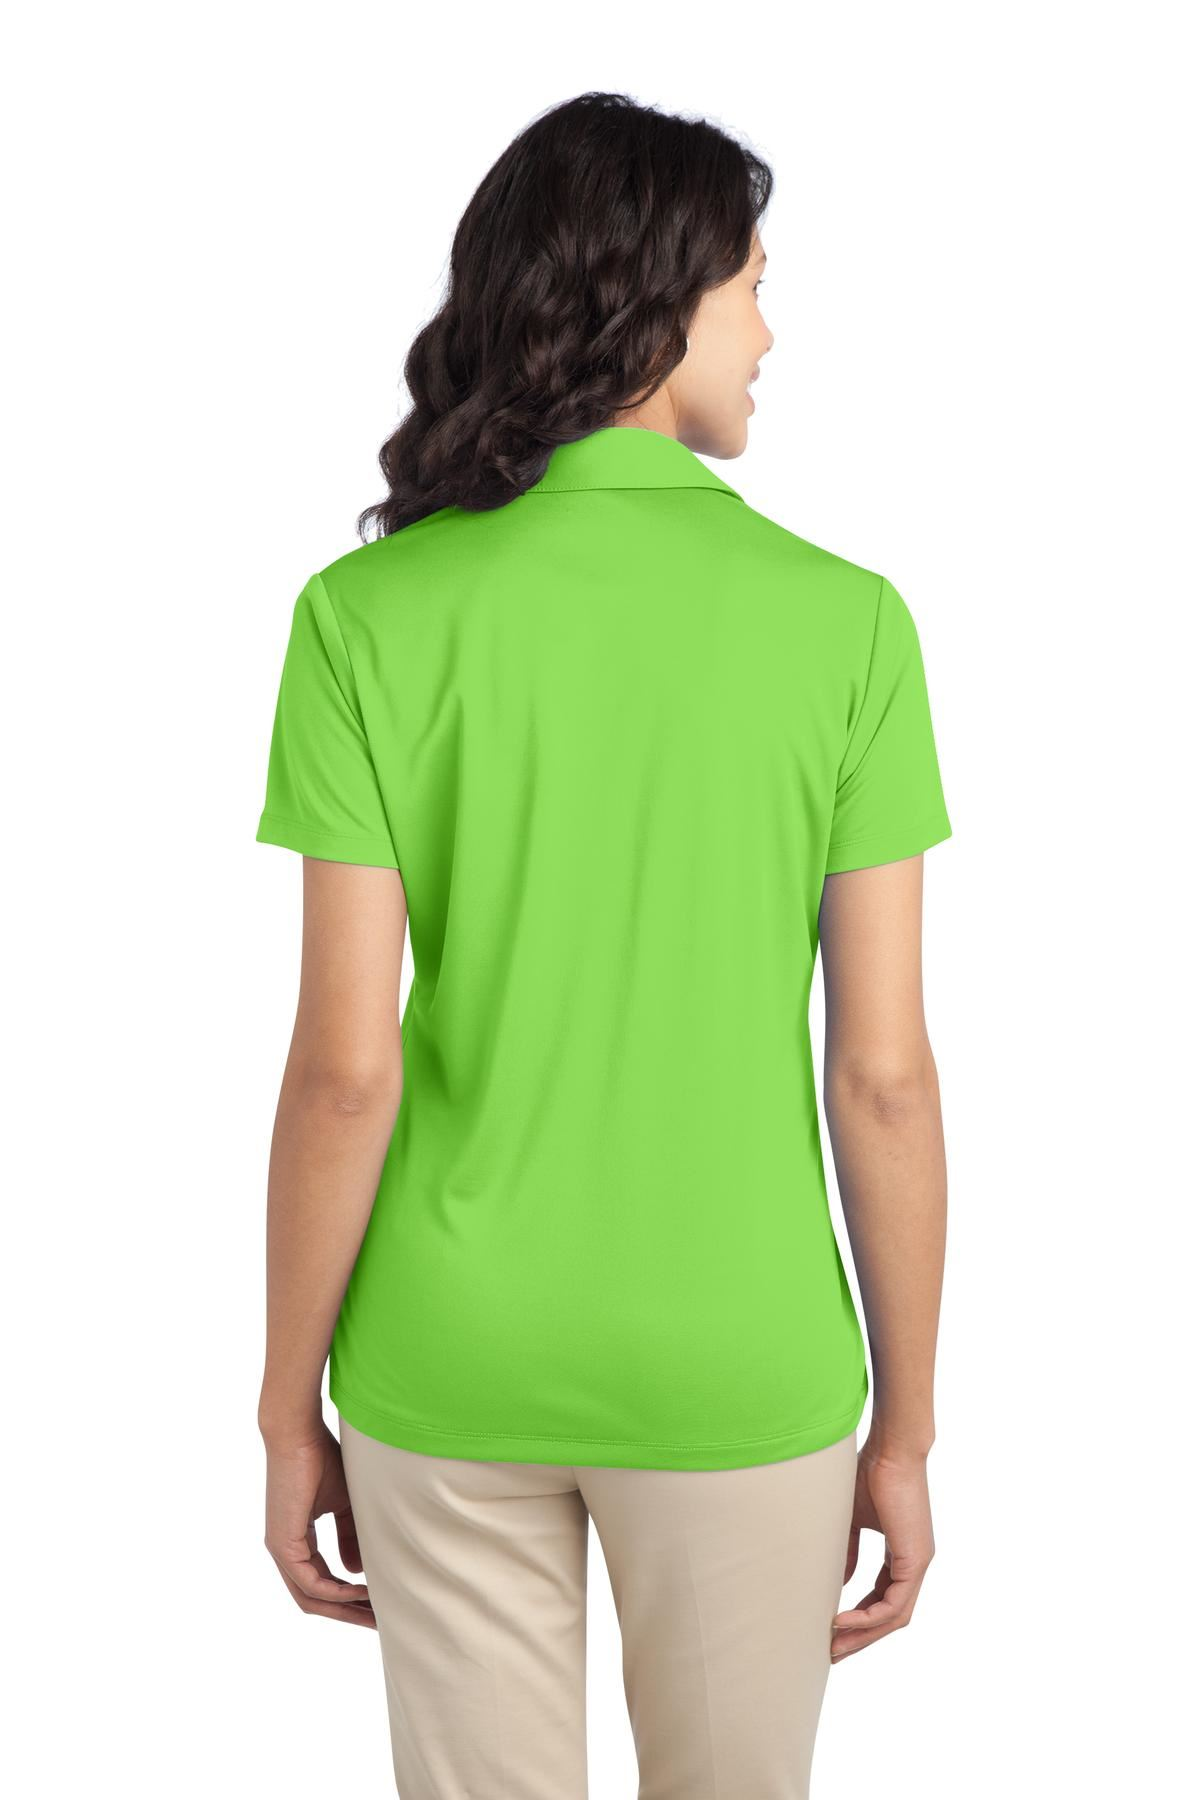 Port-Authority-Womens-Dri-Fit-SIlk-Touch-Performance-Polo-Golf-Shirt-M-L540 thumbnail 15